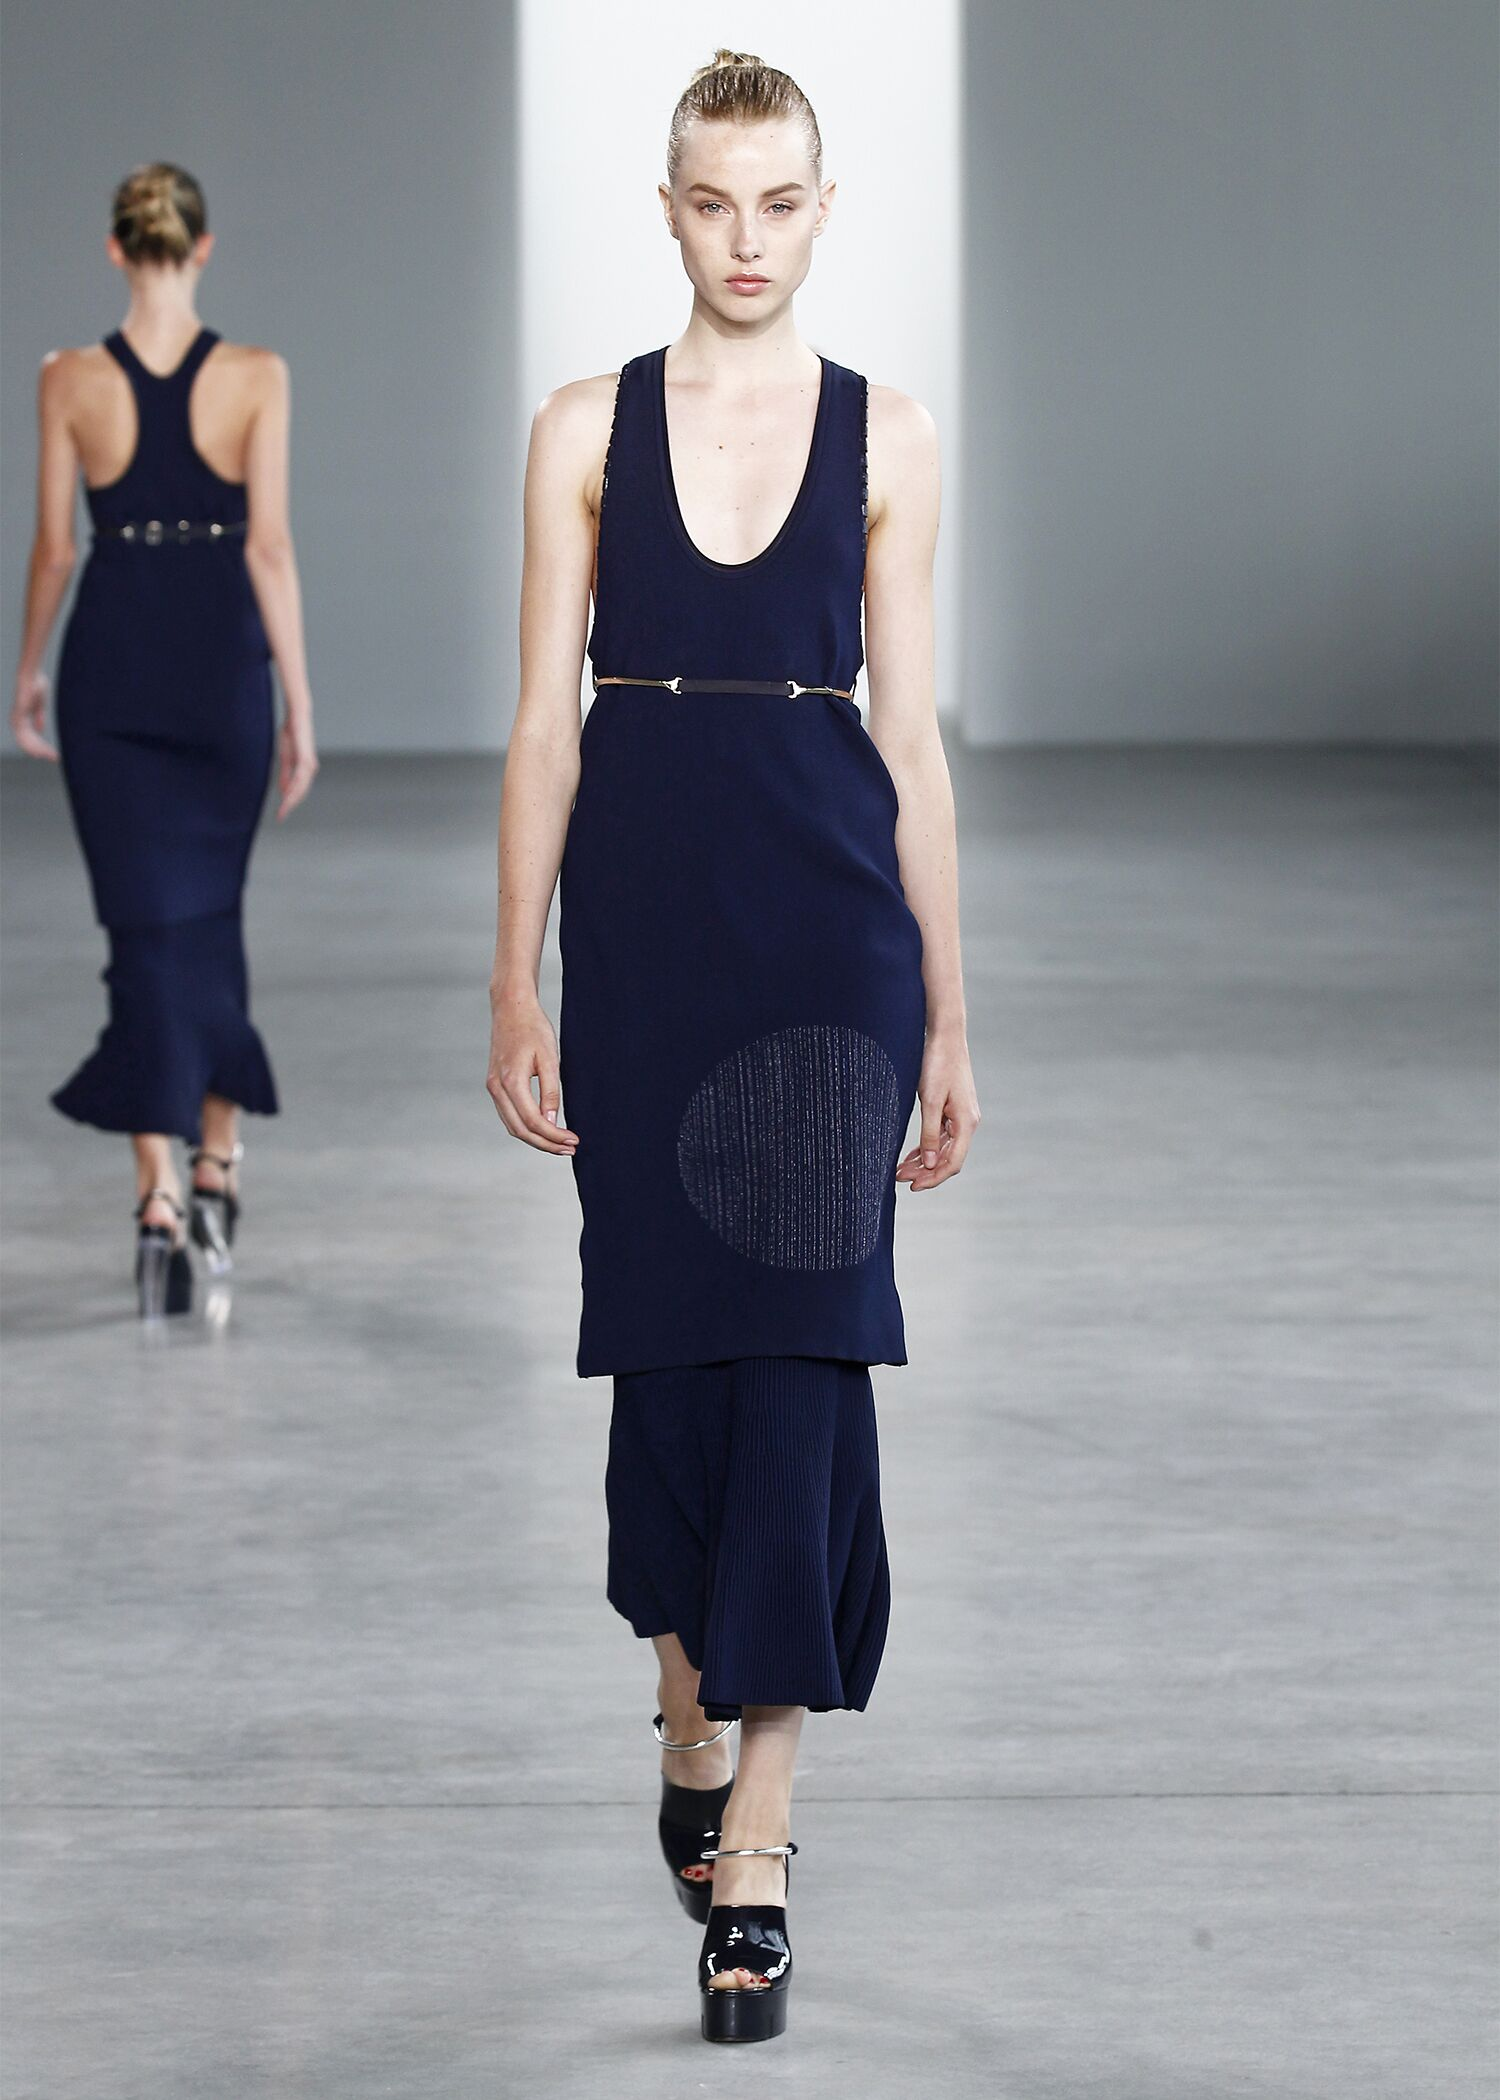 Spring Calvin Klein Collection Trends 2015 Woman